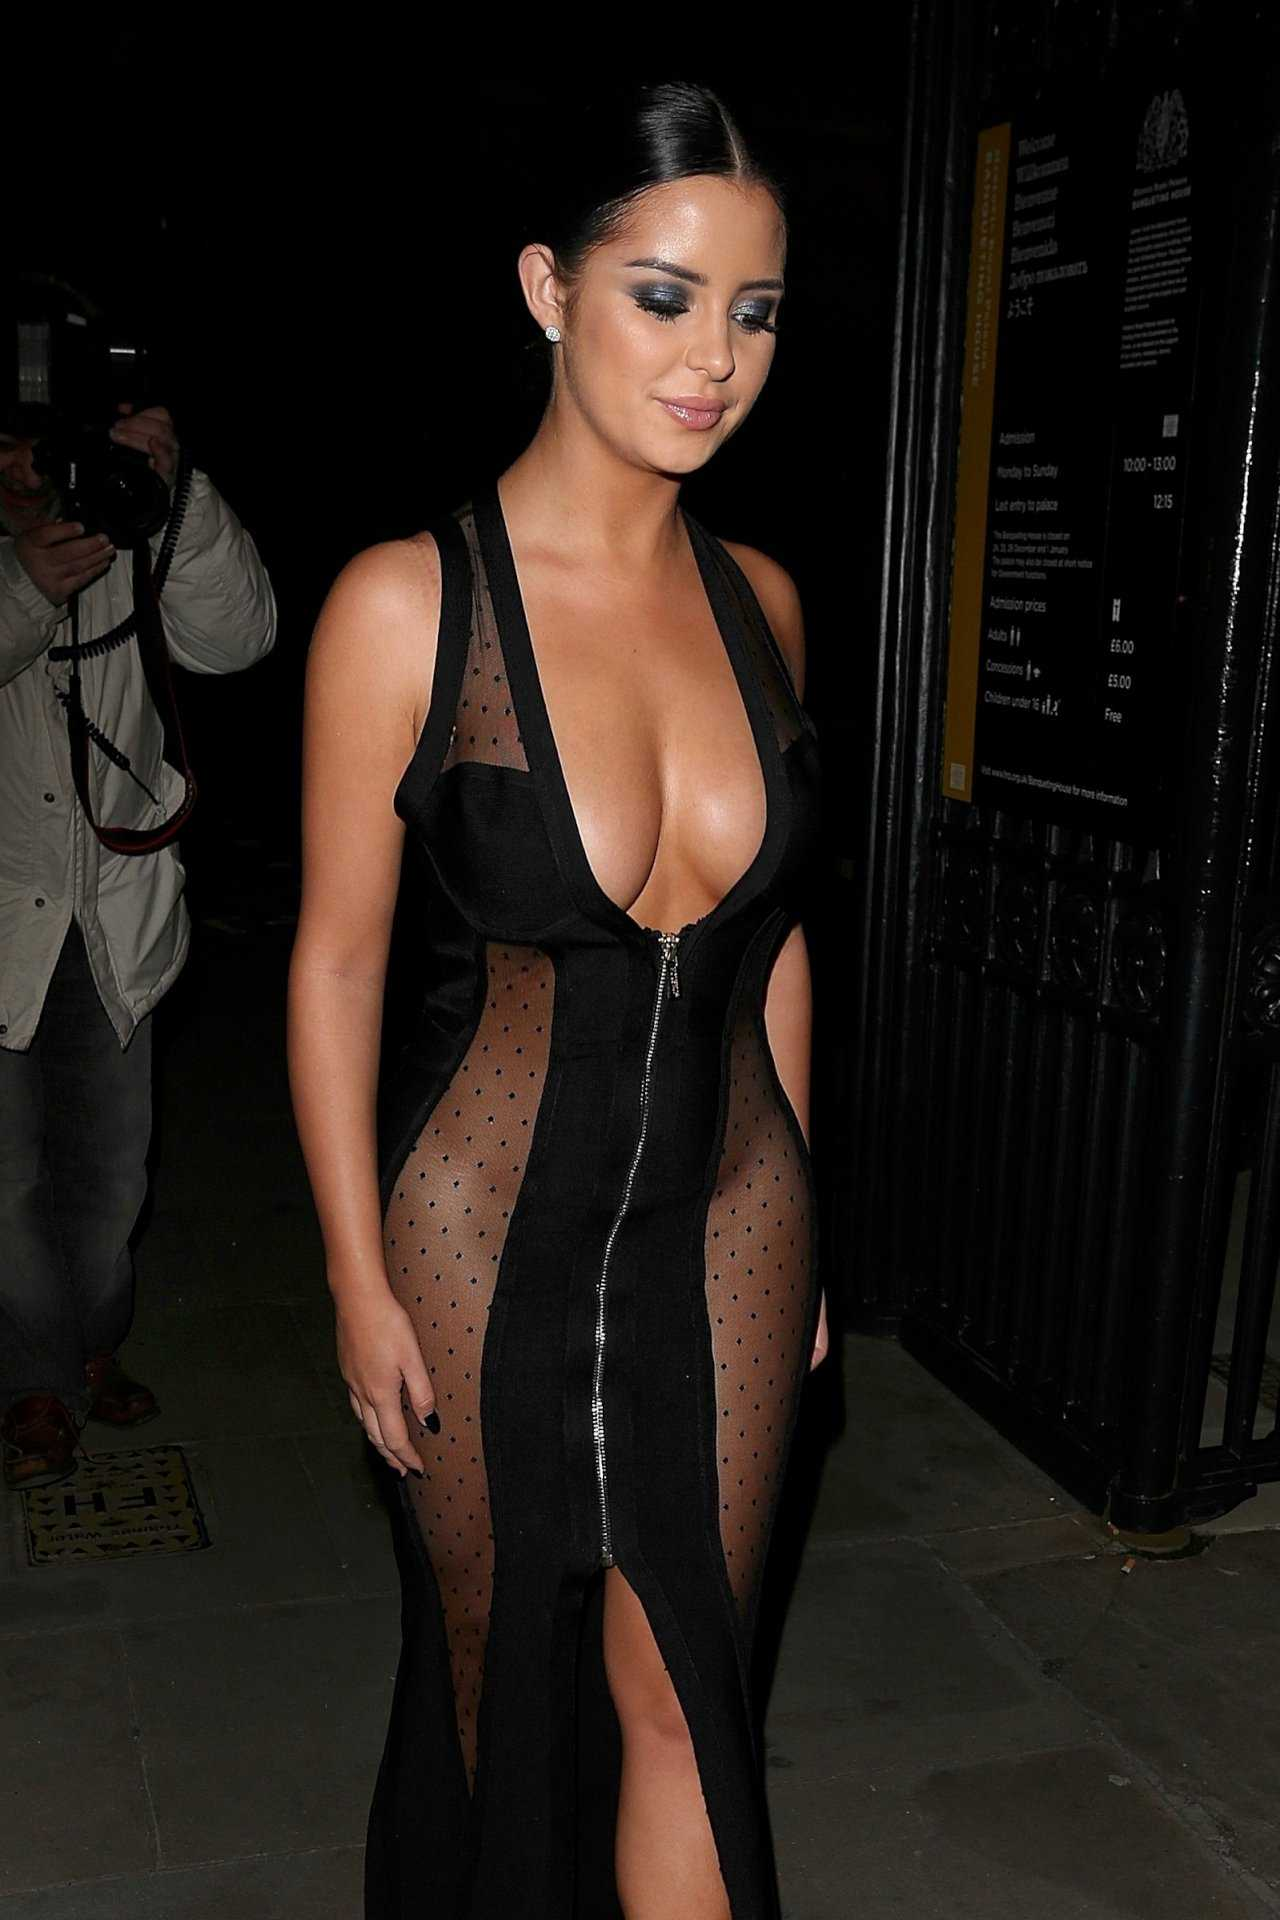 demi-rose-e-seu-vestido-sexy-no-beauty-awards-em-londres04